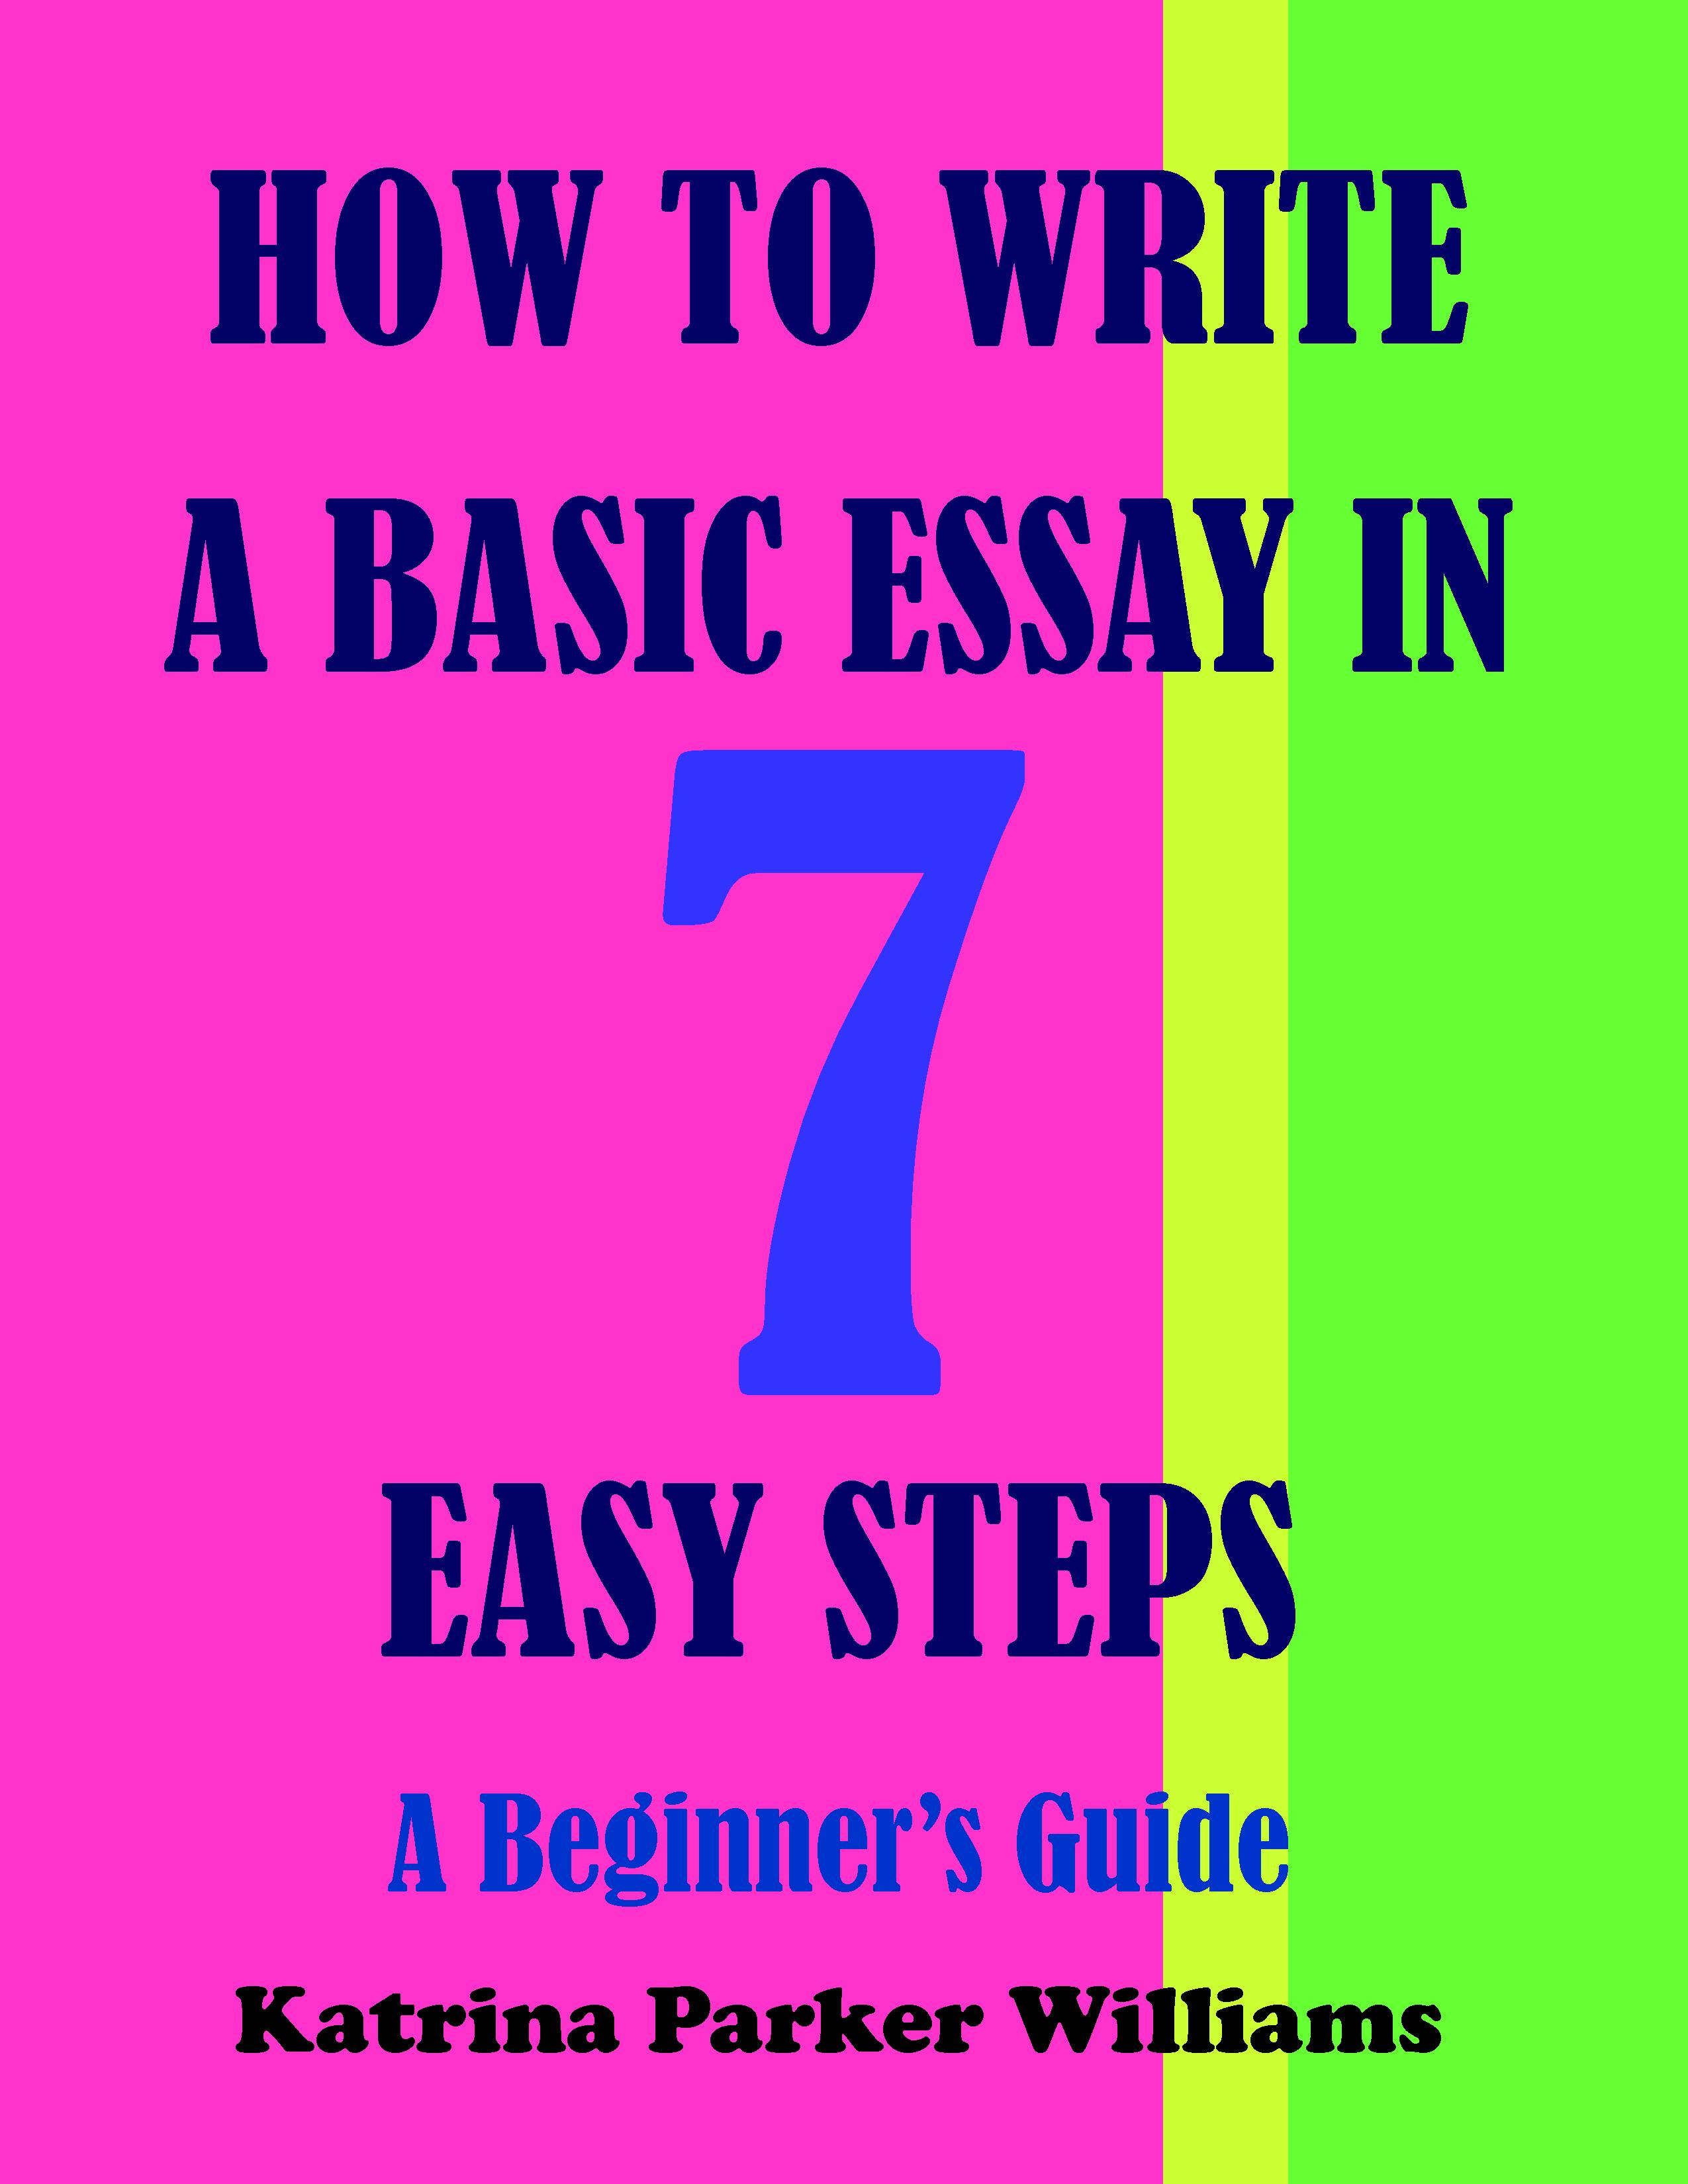 write a short essay on how to keep